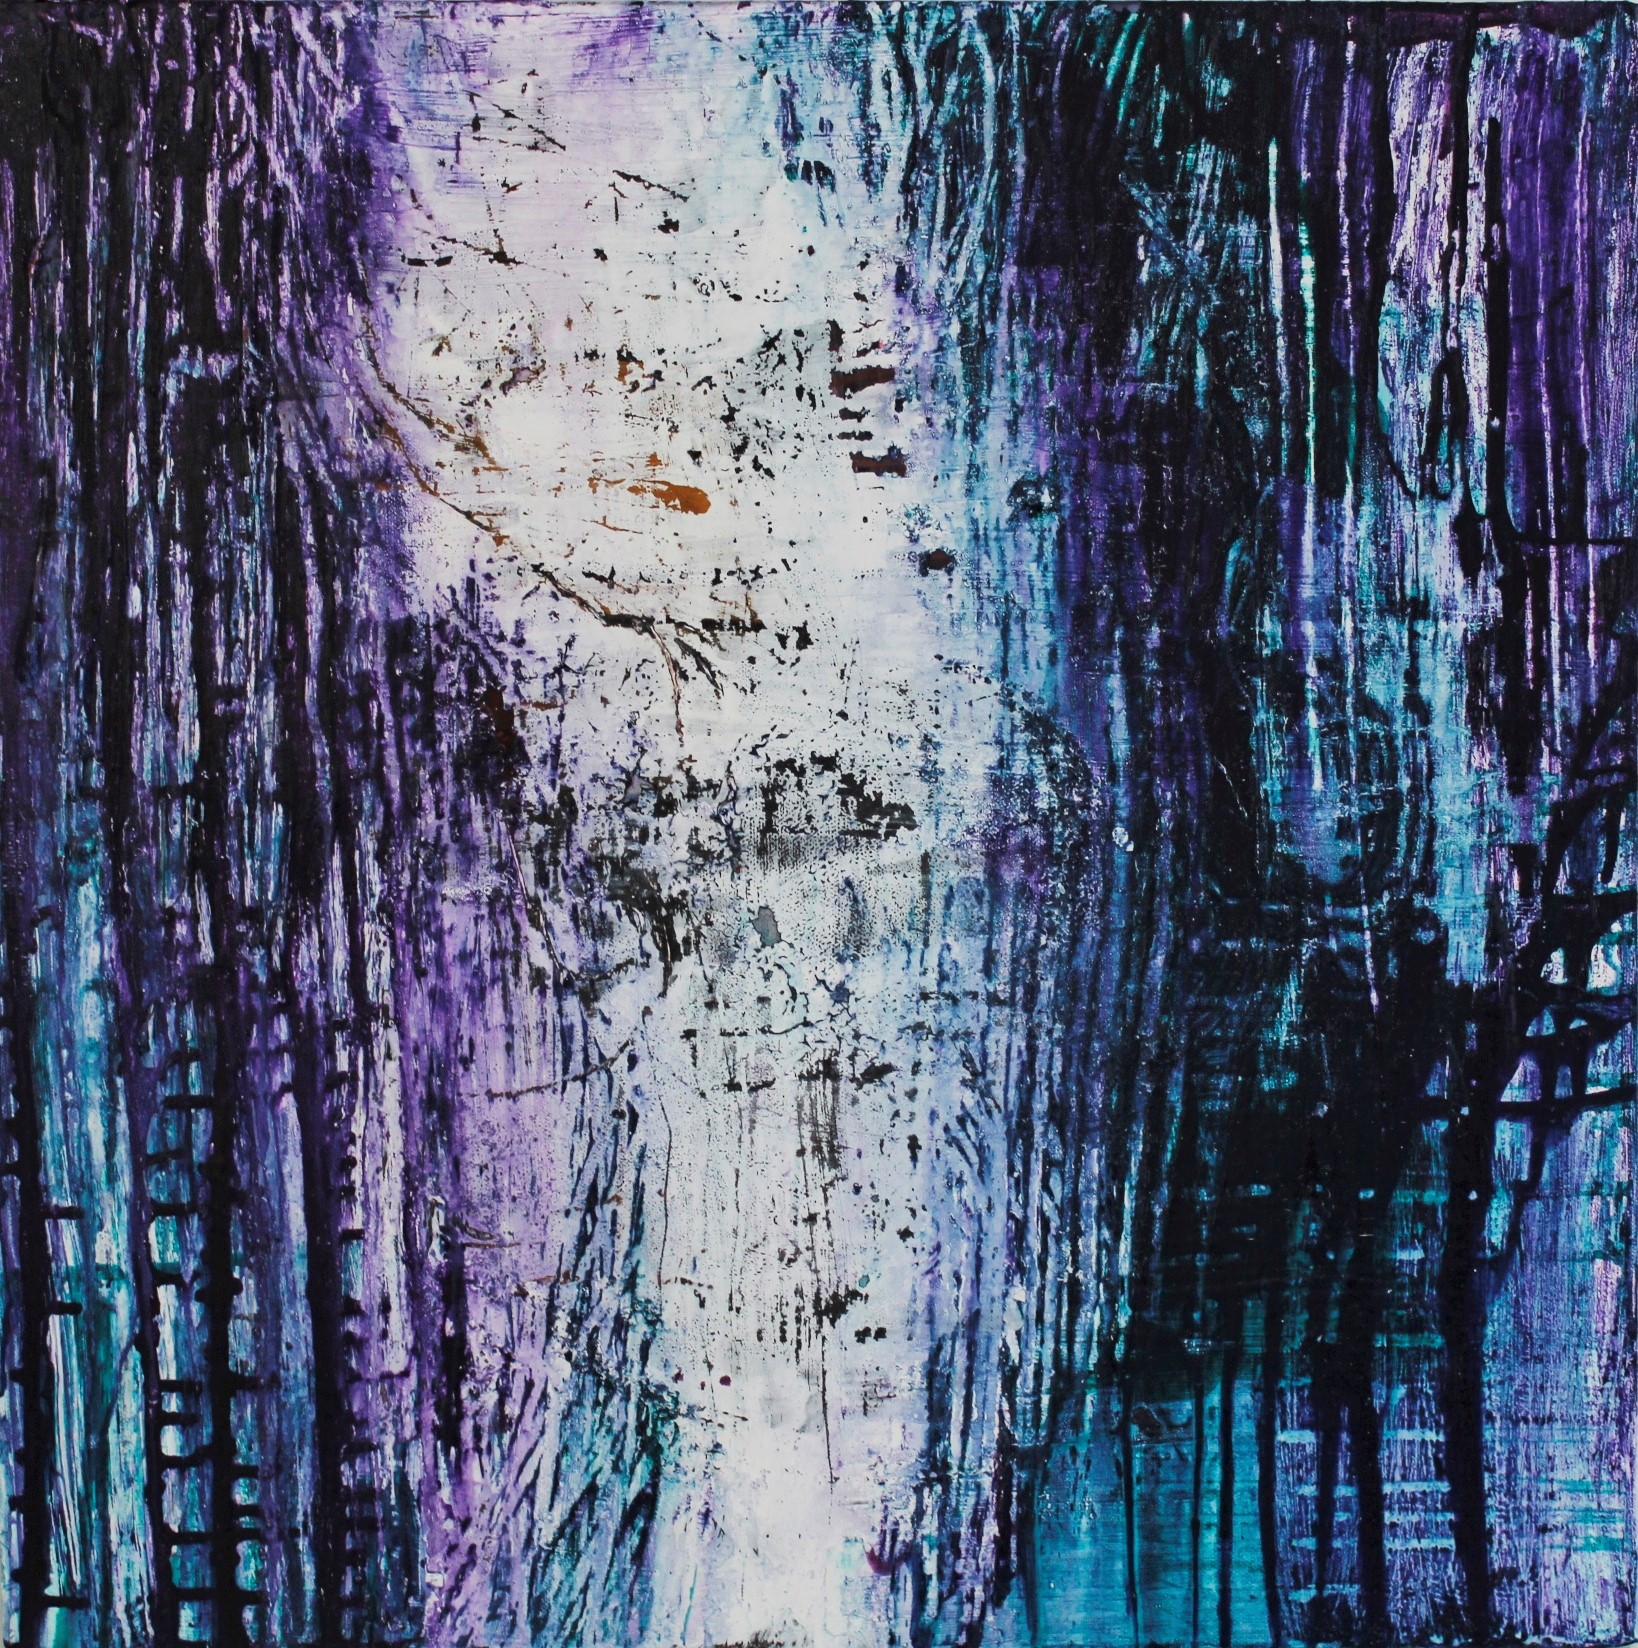 Sees, Akryyli kankaalle, 60 cm x 60 cm  Myyty / Sold